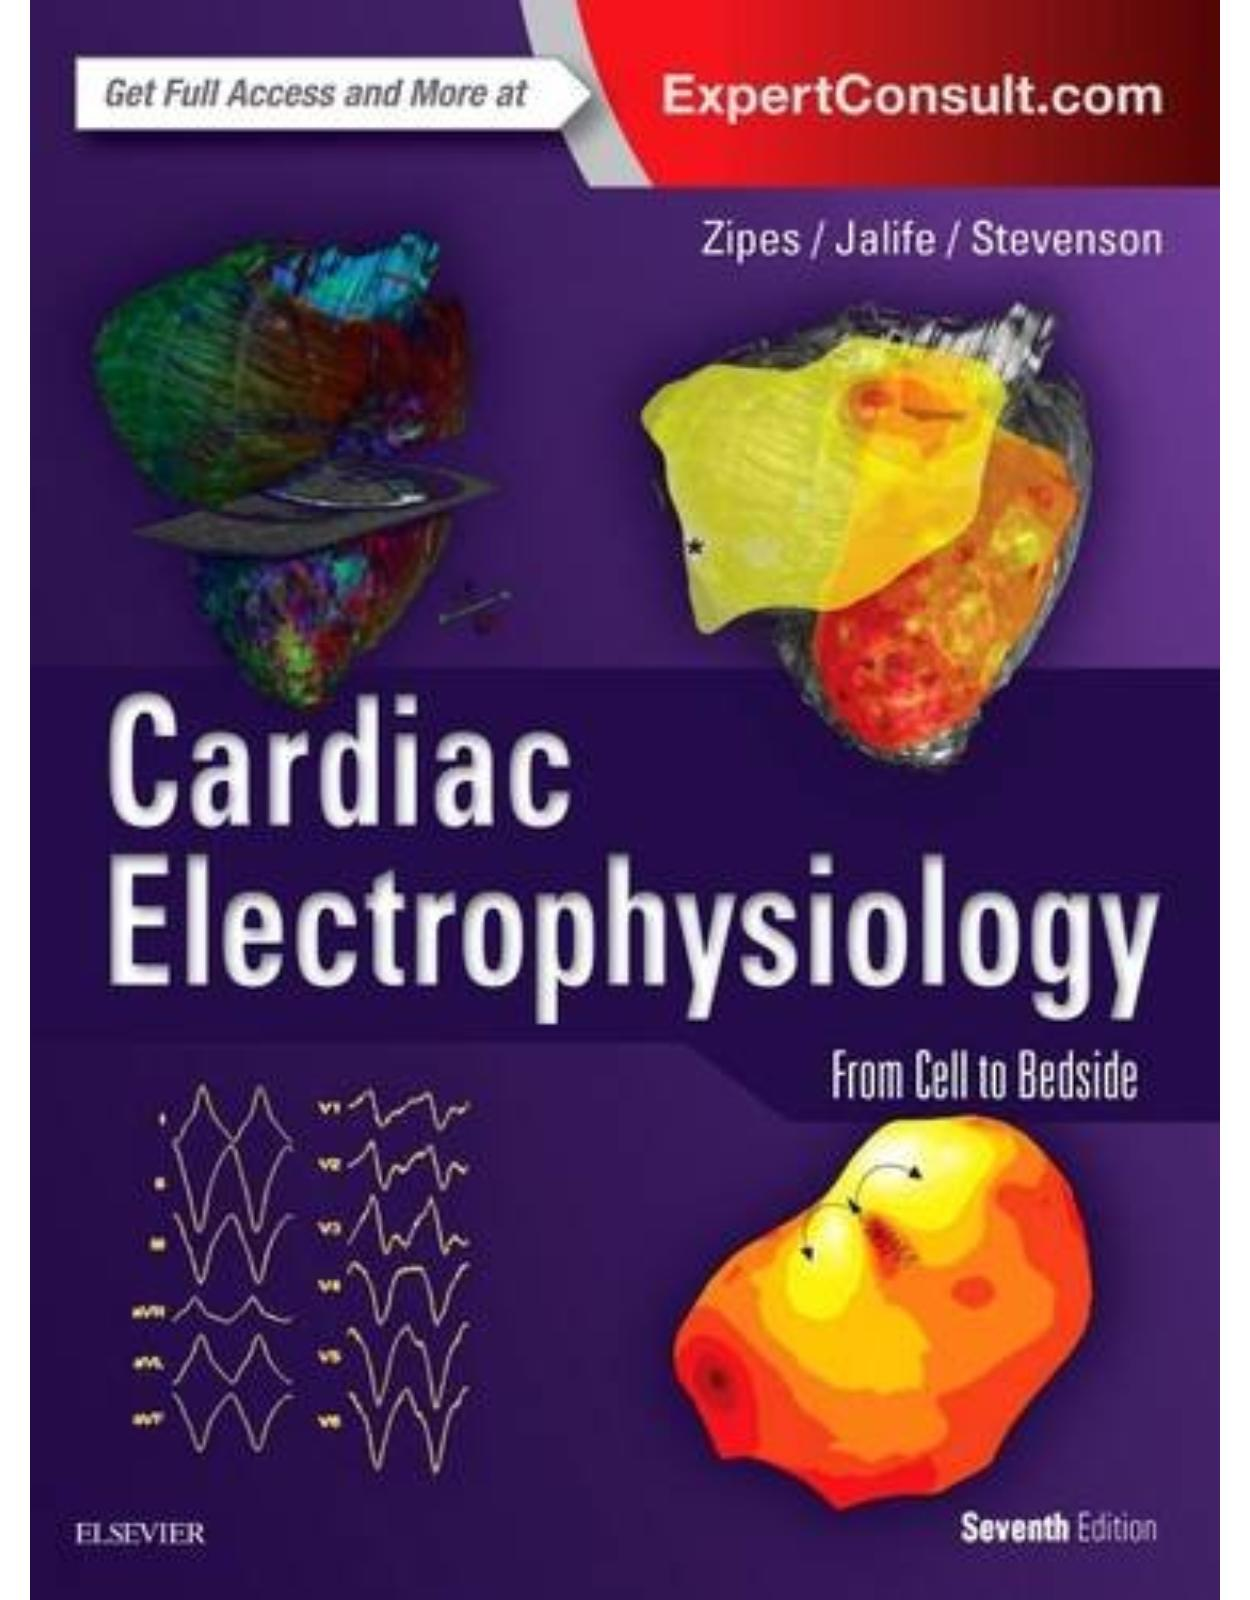 Cardiac Electrophysiology: From Cell to Bedside, 7th Edition